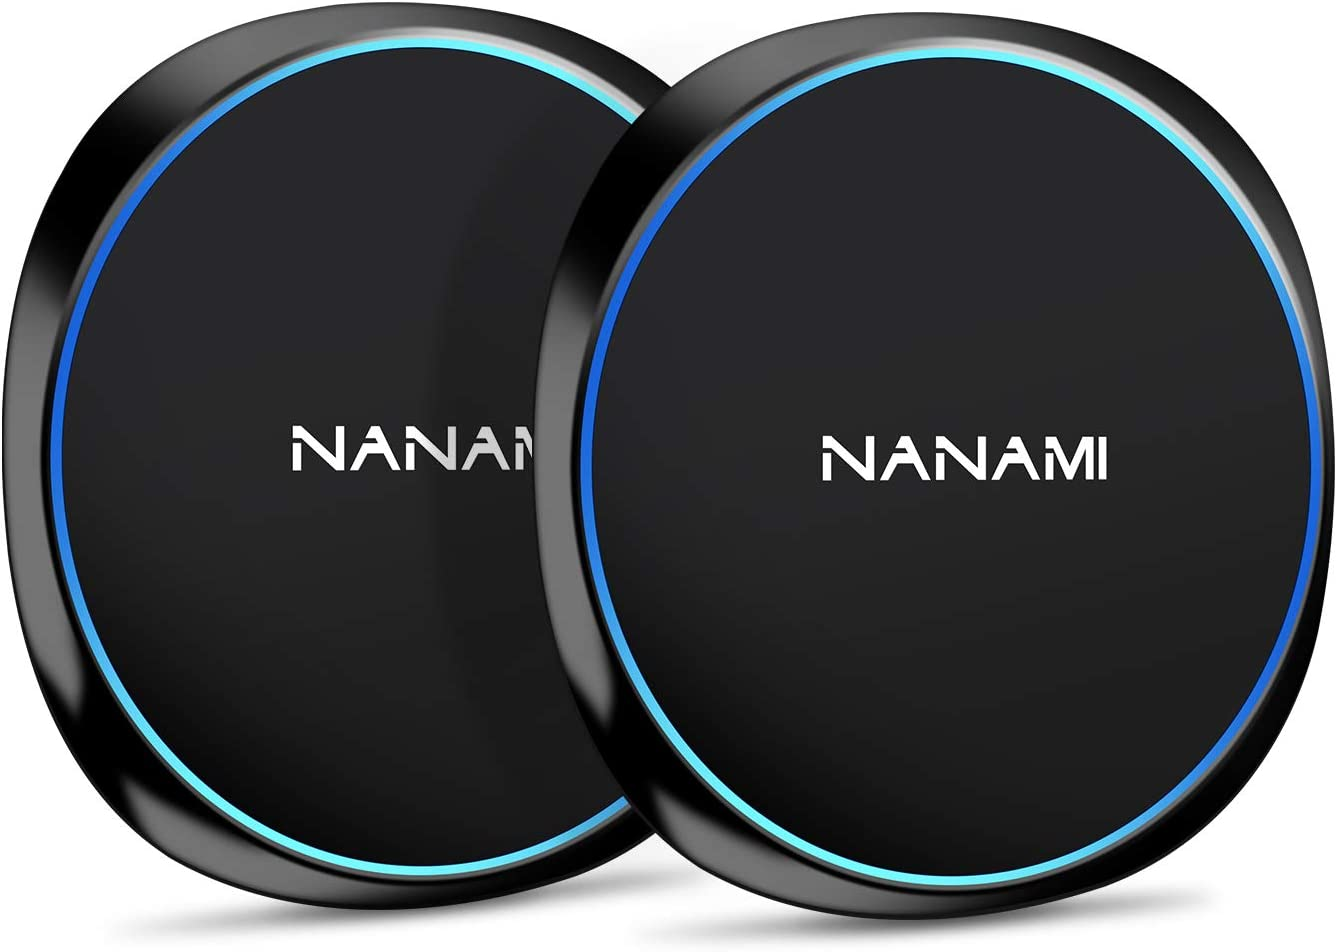 NANAMI Fast Wireless Charger,10W Qi-Certified Wireless Charging Pad [2 Pack] Compatible Samsung S20/S10/S9/S8/S7/Note 10+/9/8, 7.5W for iPhone SE/11/11 Pro/11 Pro Max/XS Max/XS/XR/X/8 Plus/New Airpods